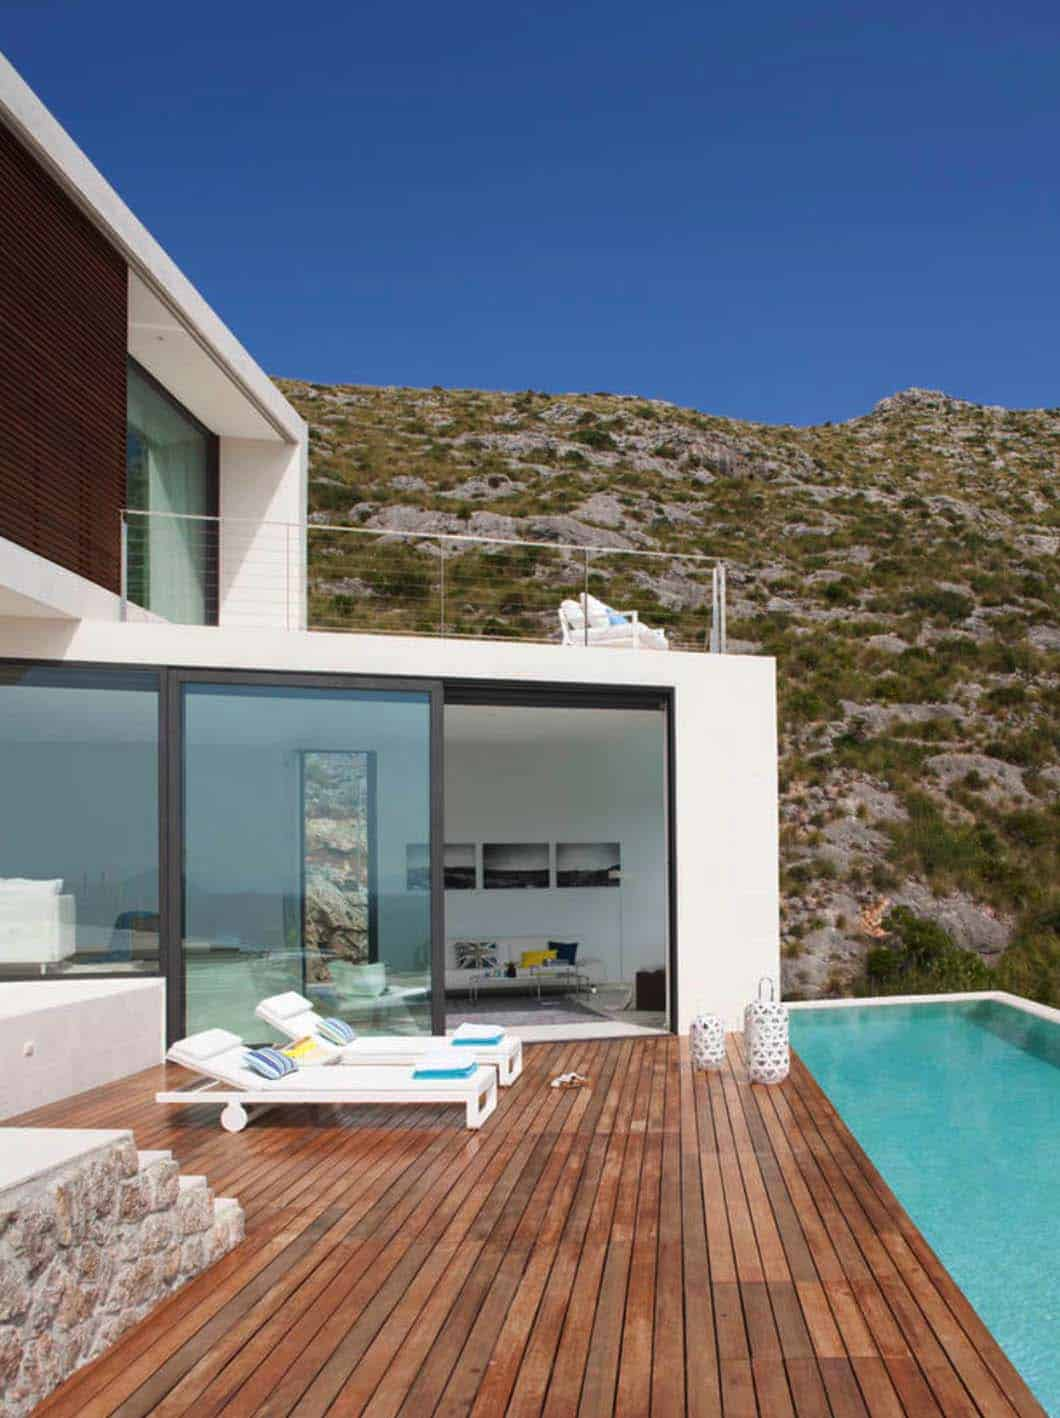 Contemporary Mountain House-Miquel Lacomba-14-1 Kindesign